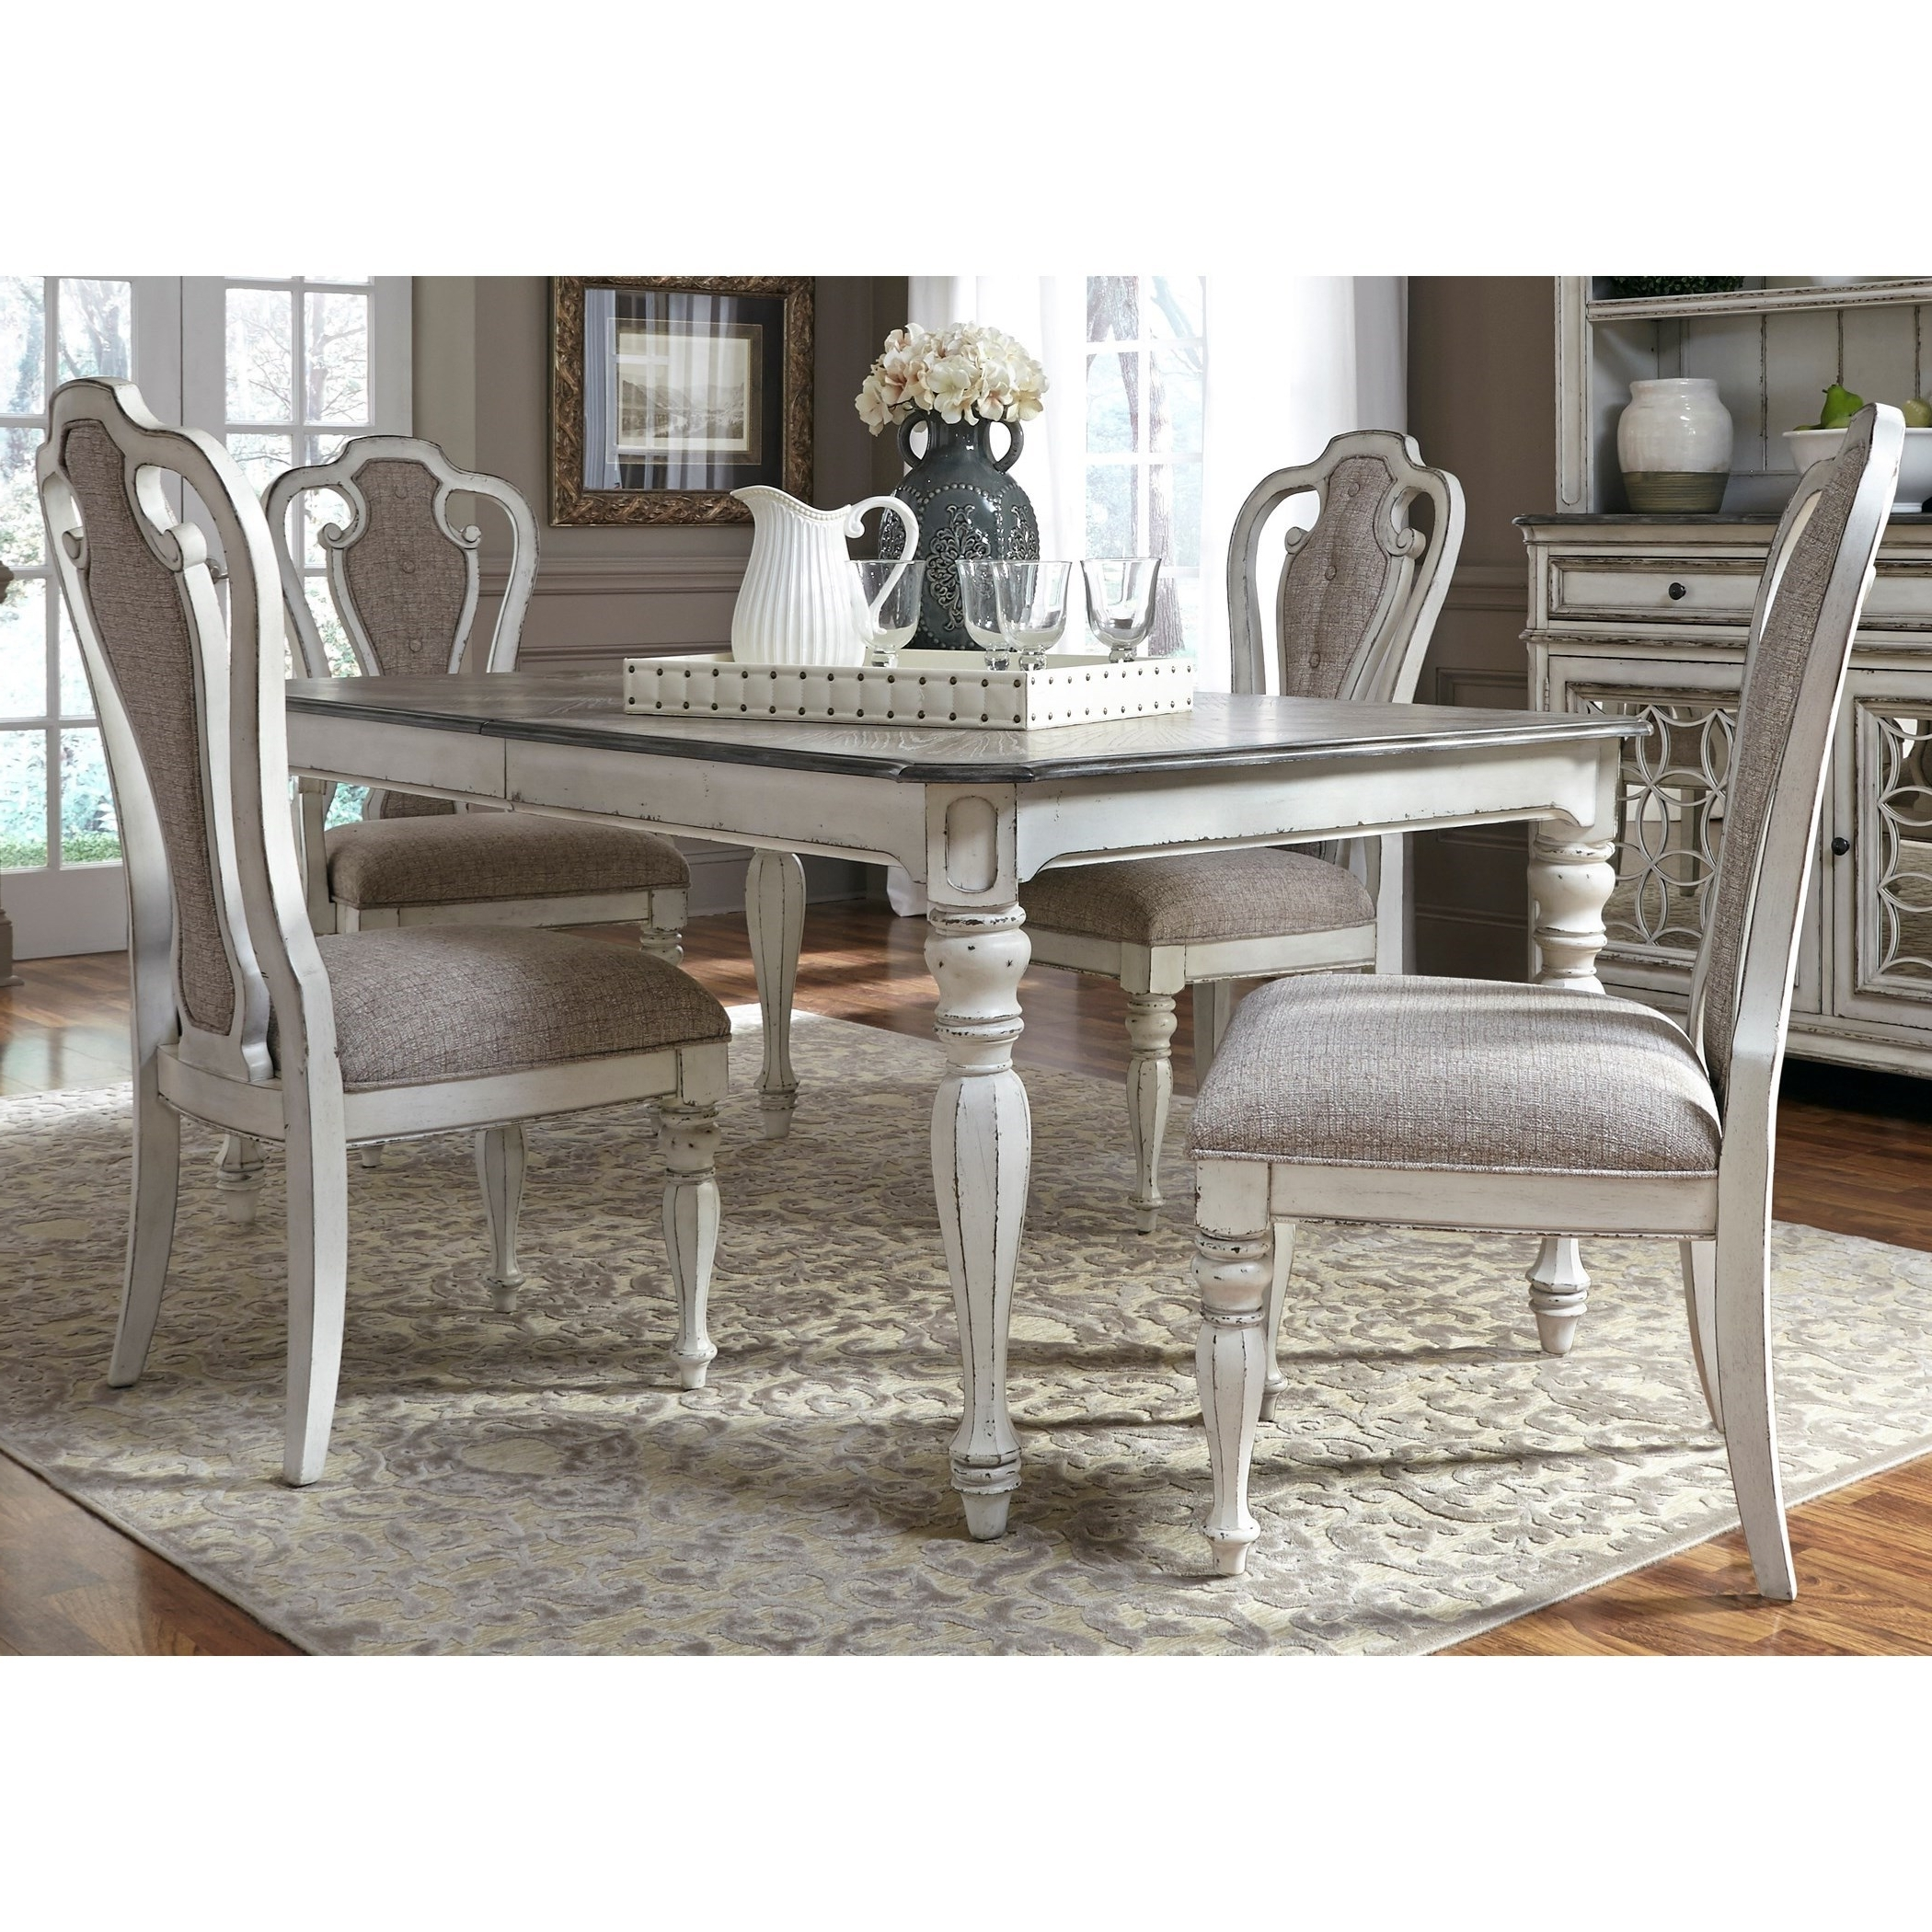 Jaxon 5 Piece Extension Counter Sets With Wood Stools Within Latest Liberty Furniture Magnolia Manor Dining 5 Piece Rectangular Table (Gallery 19 of 25)